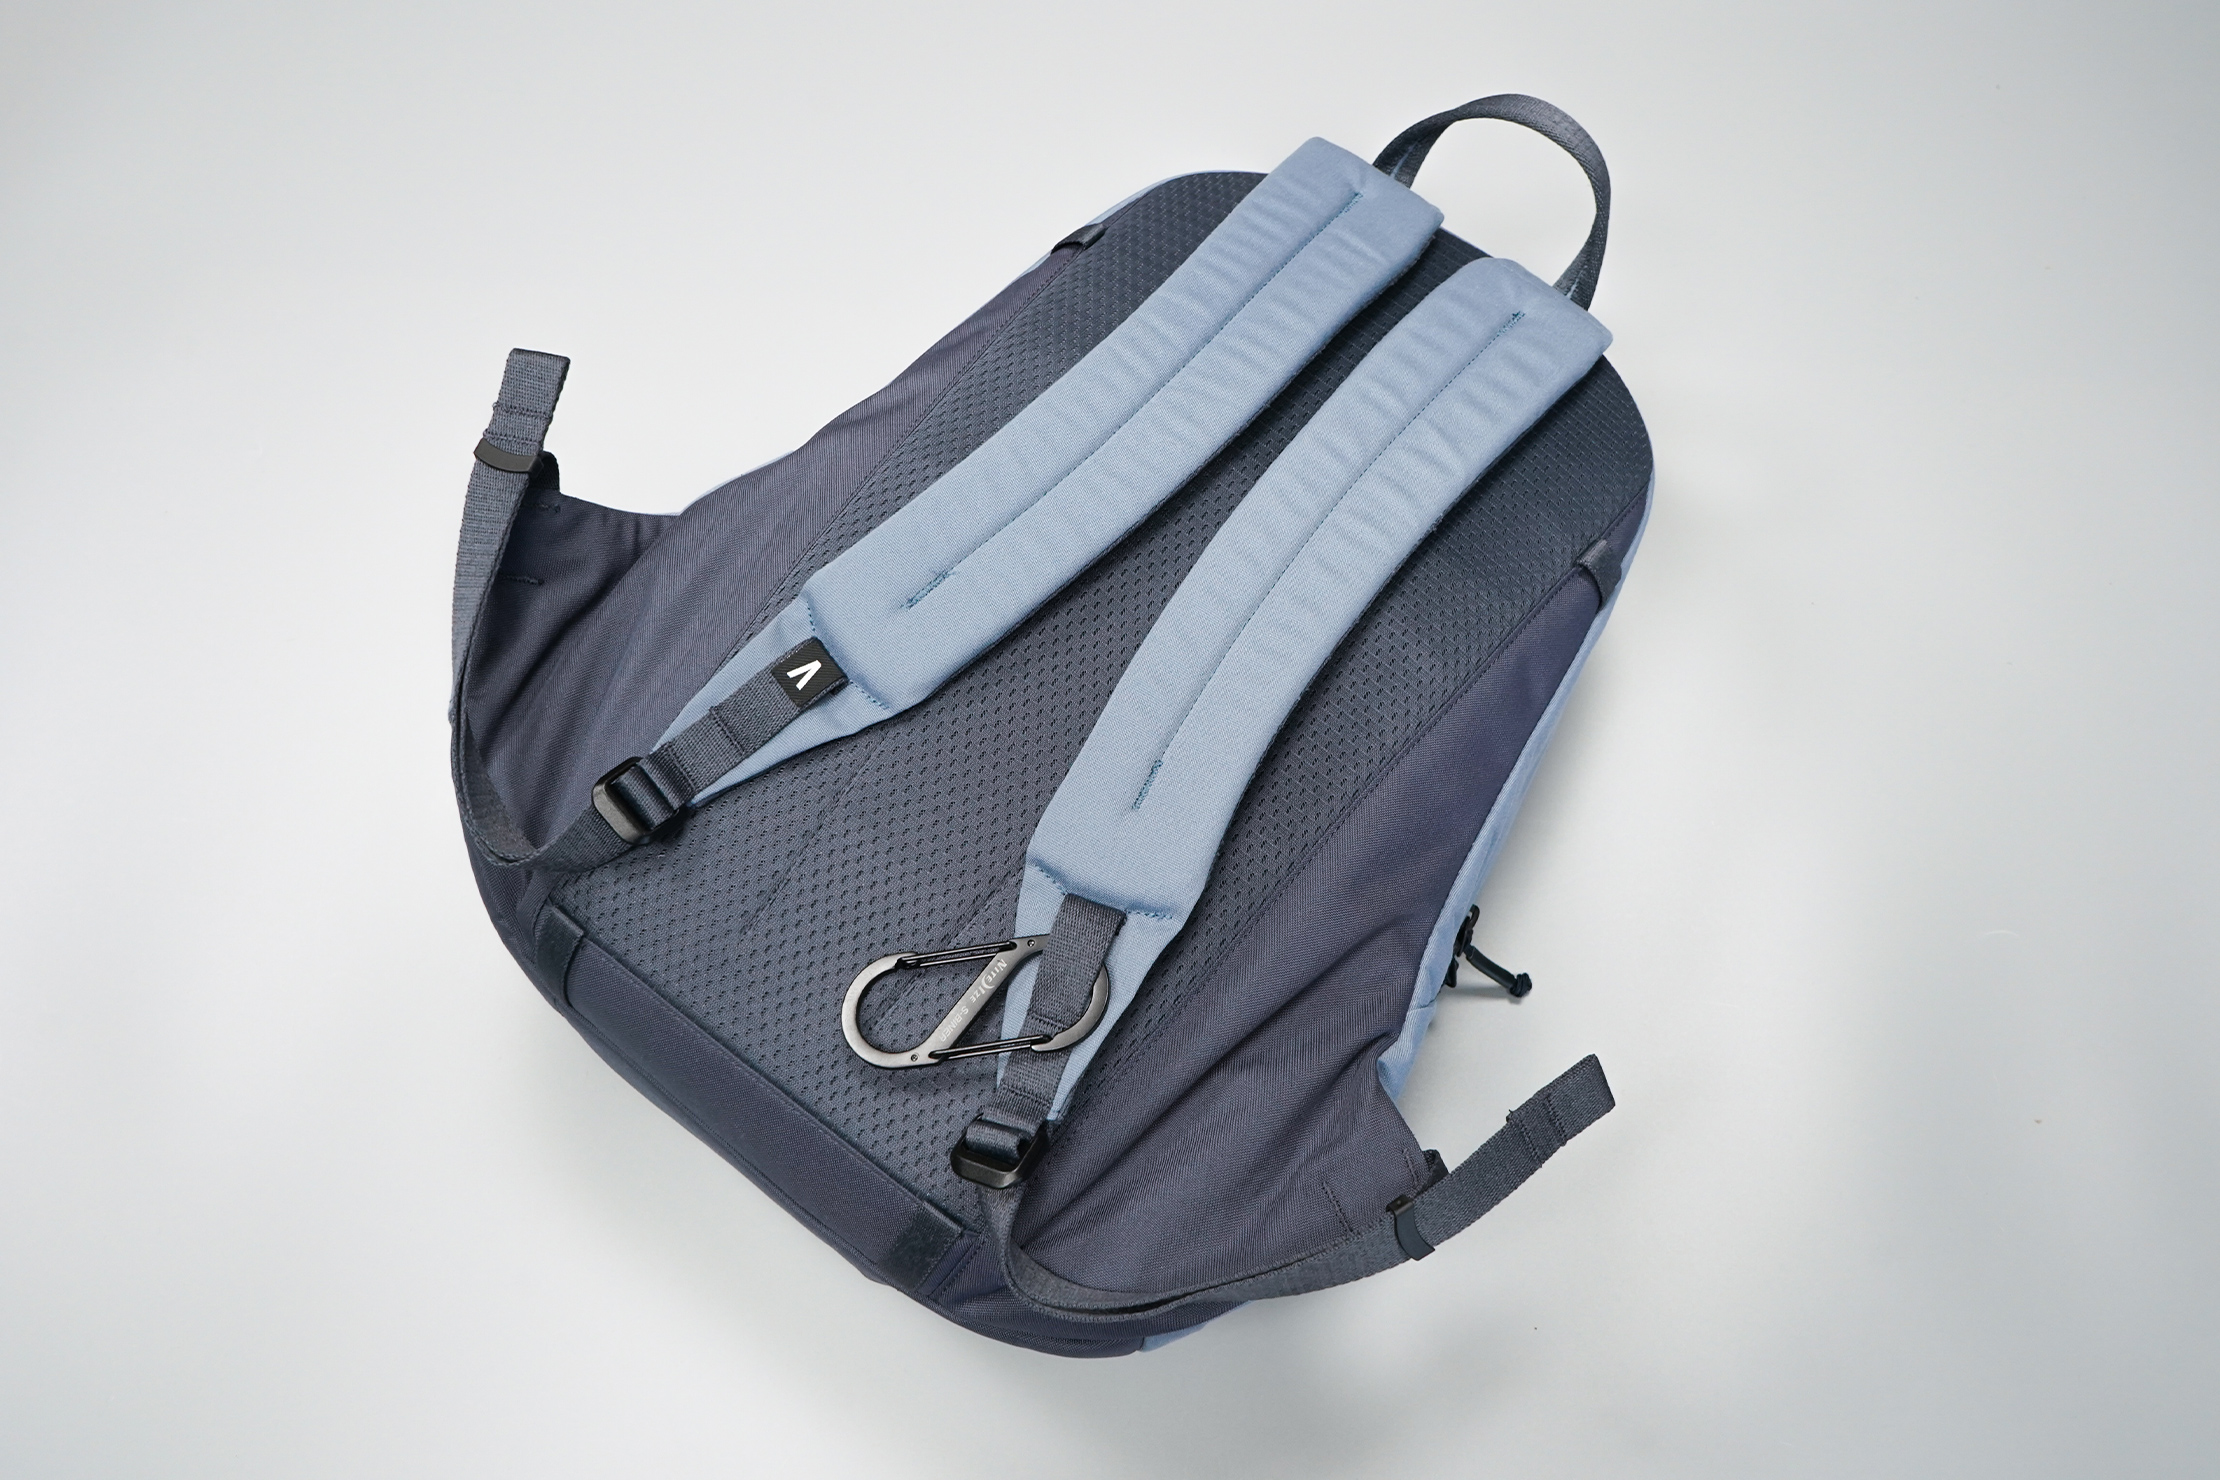 Boundary Supply Rennen Recycled Daypack | Harness system & back panel